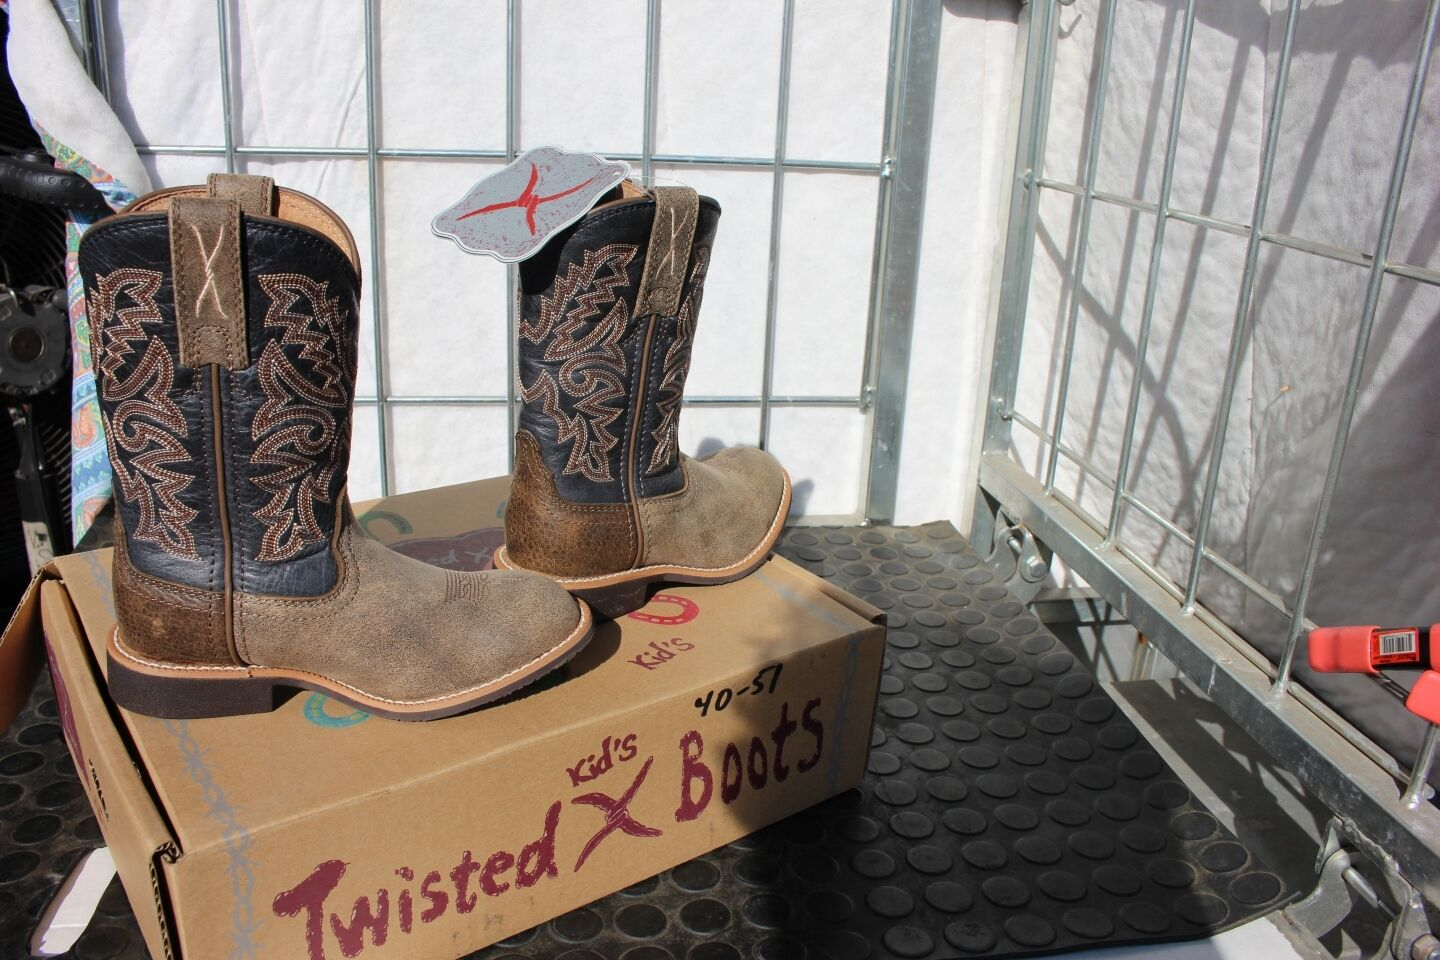 40-51 Hand New child 10M Twisted X Top Hand 40-51 western Stiefel was 95.00 bba173